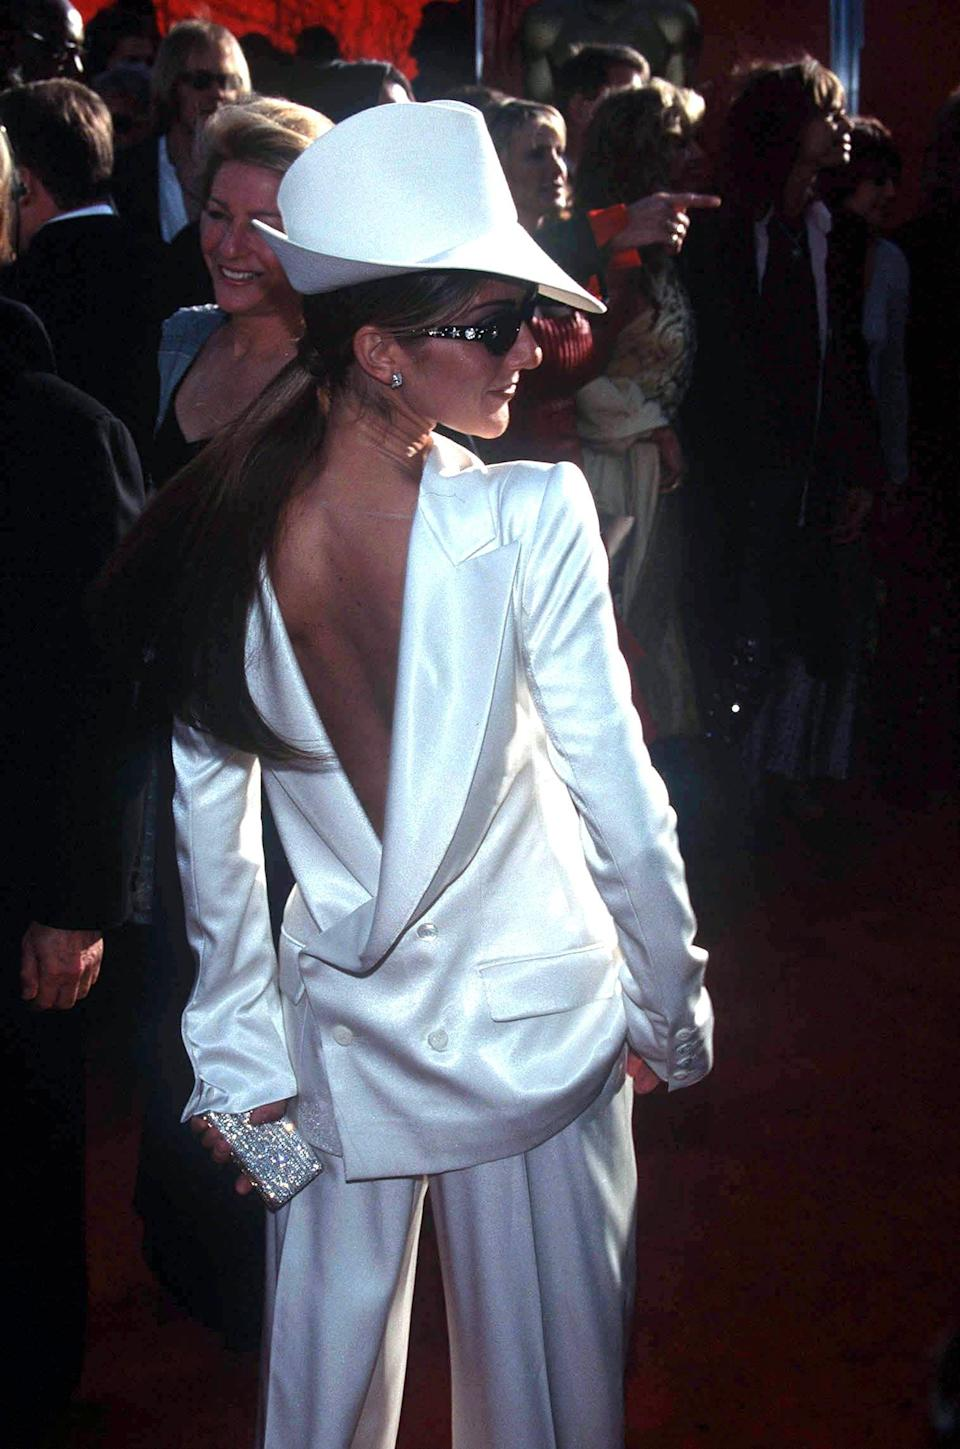 Celine Dion at the 1999 ceremonyShutterstock